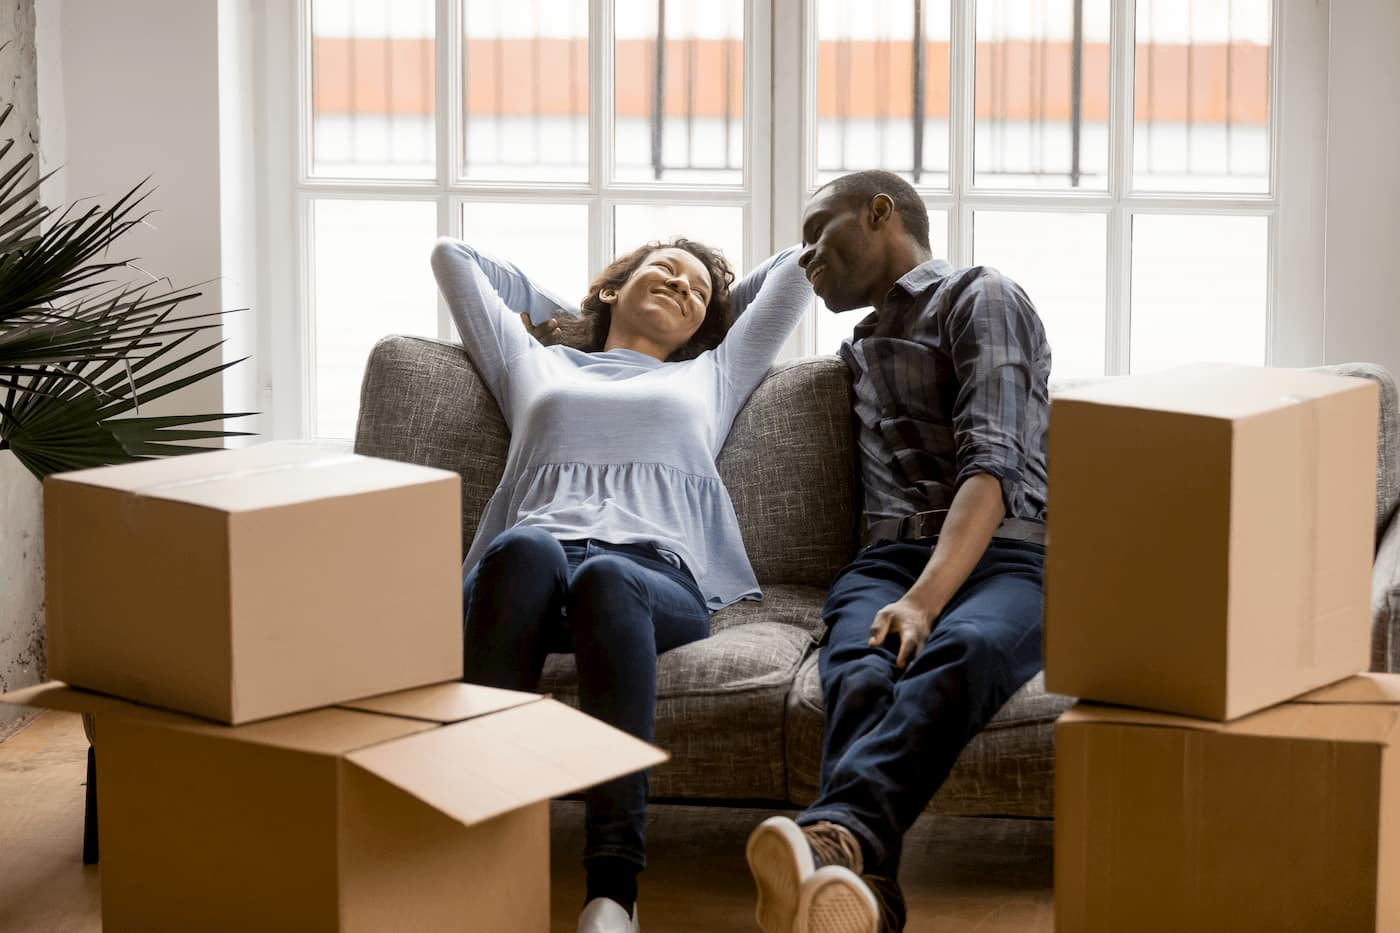 Rental property tenants moving out